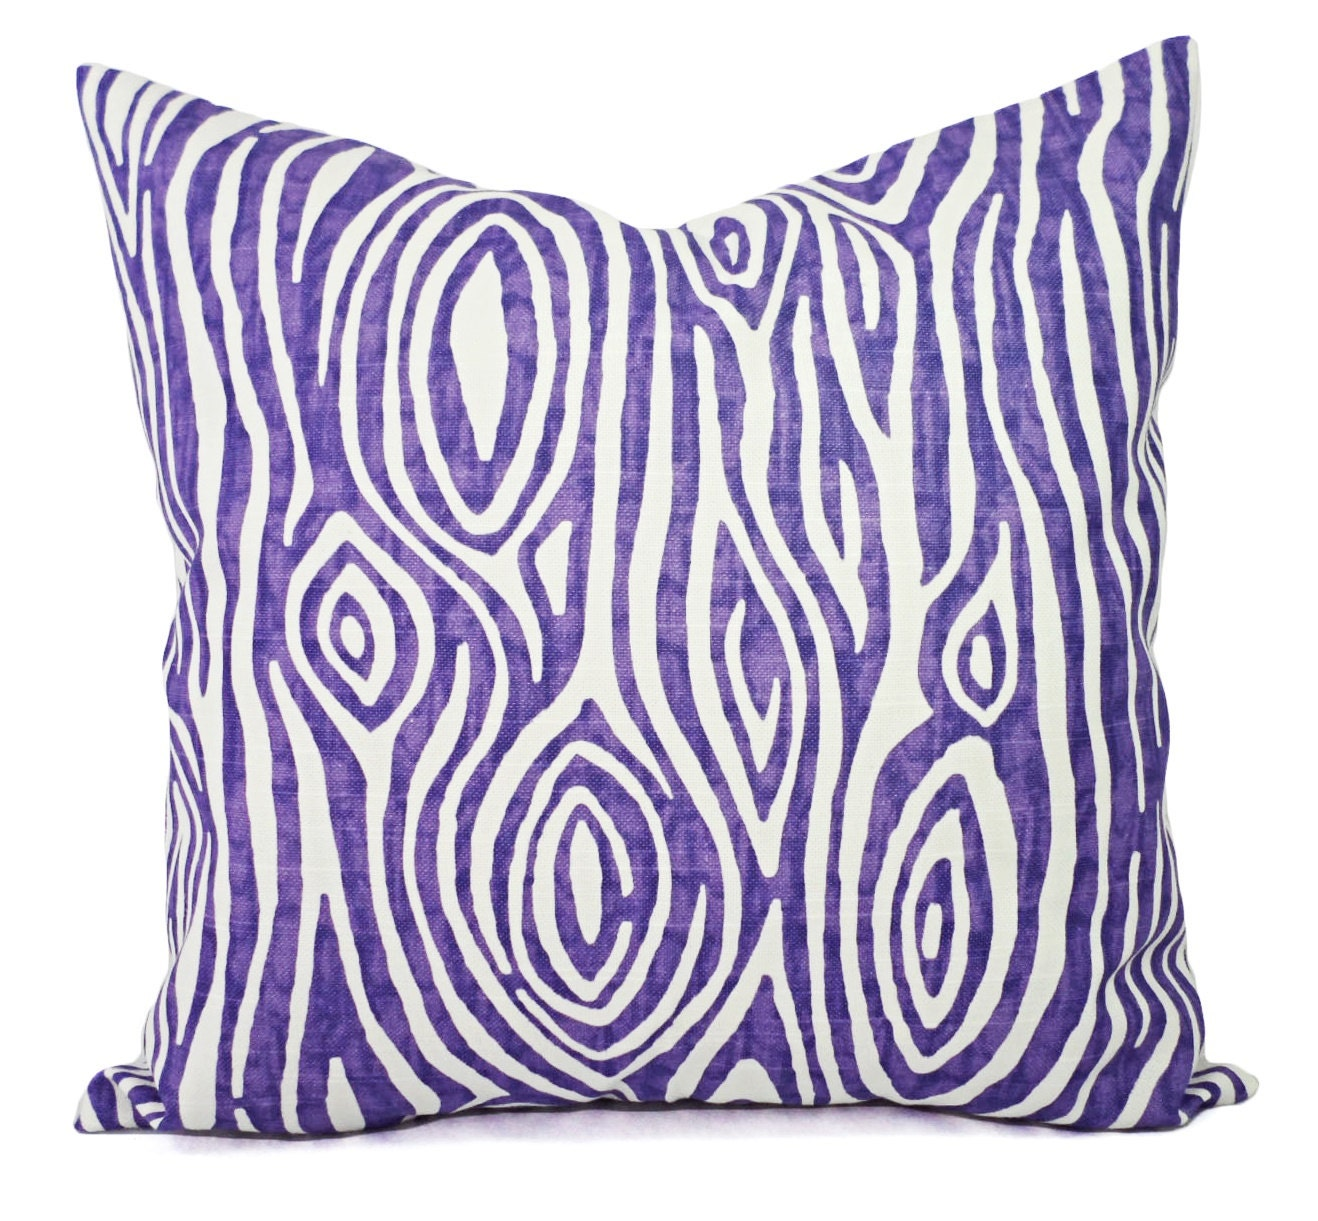 Purple And White Decorative Pillows : CLEARANCE One Purple Pillow Cover Decorative Pillow Cover